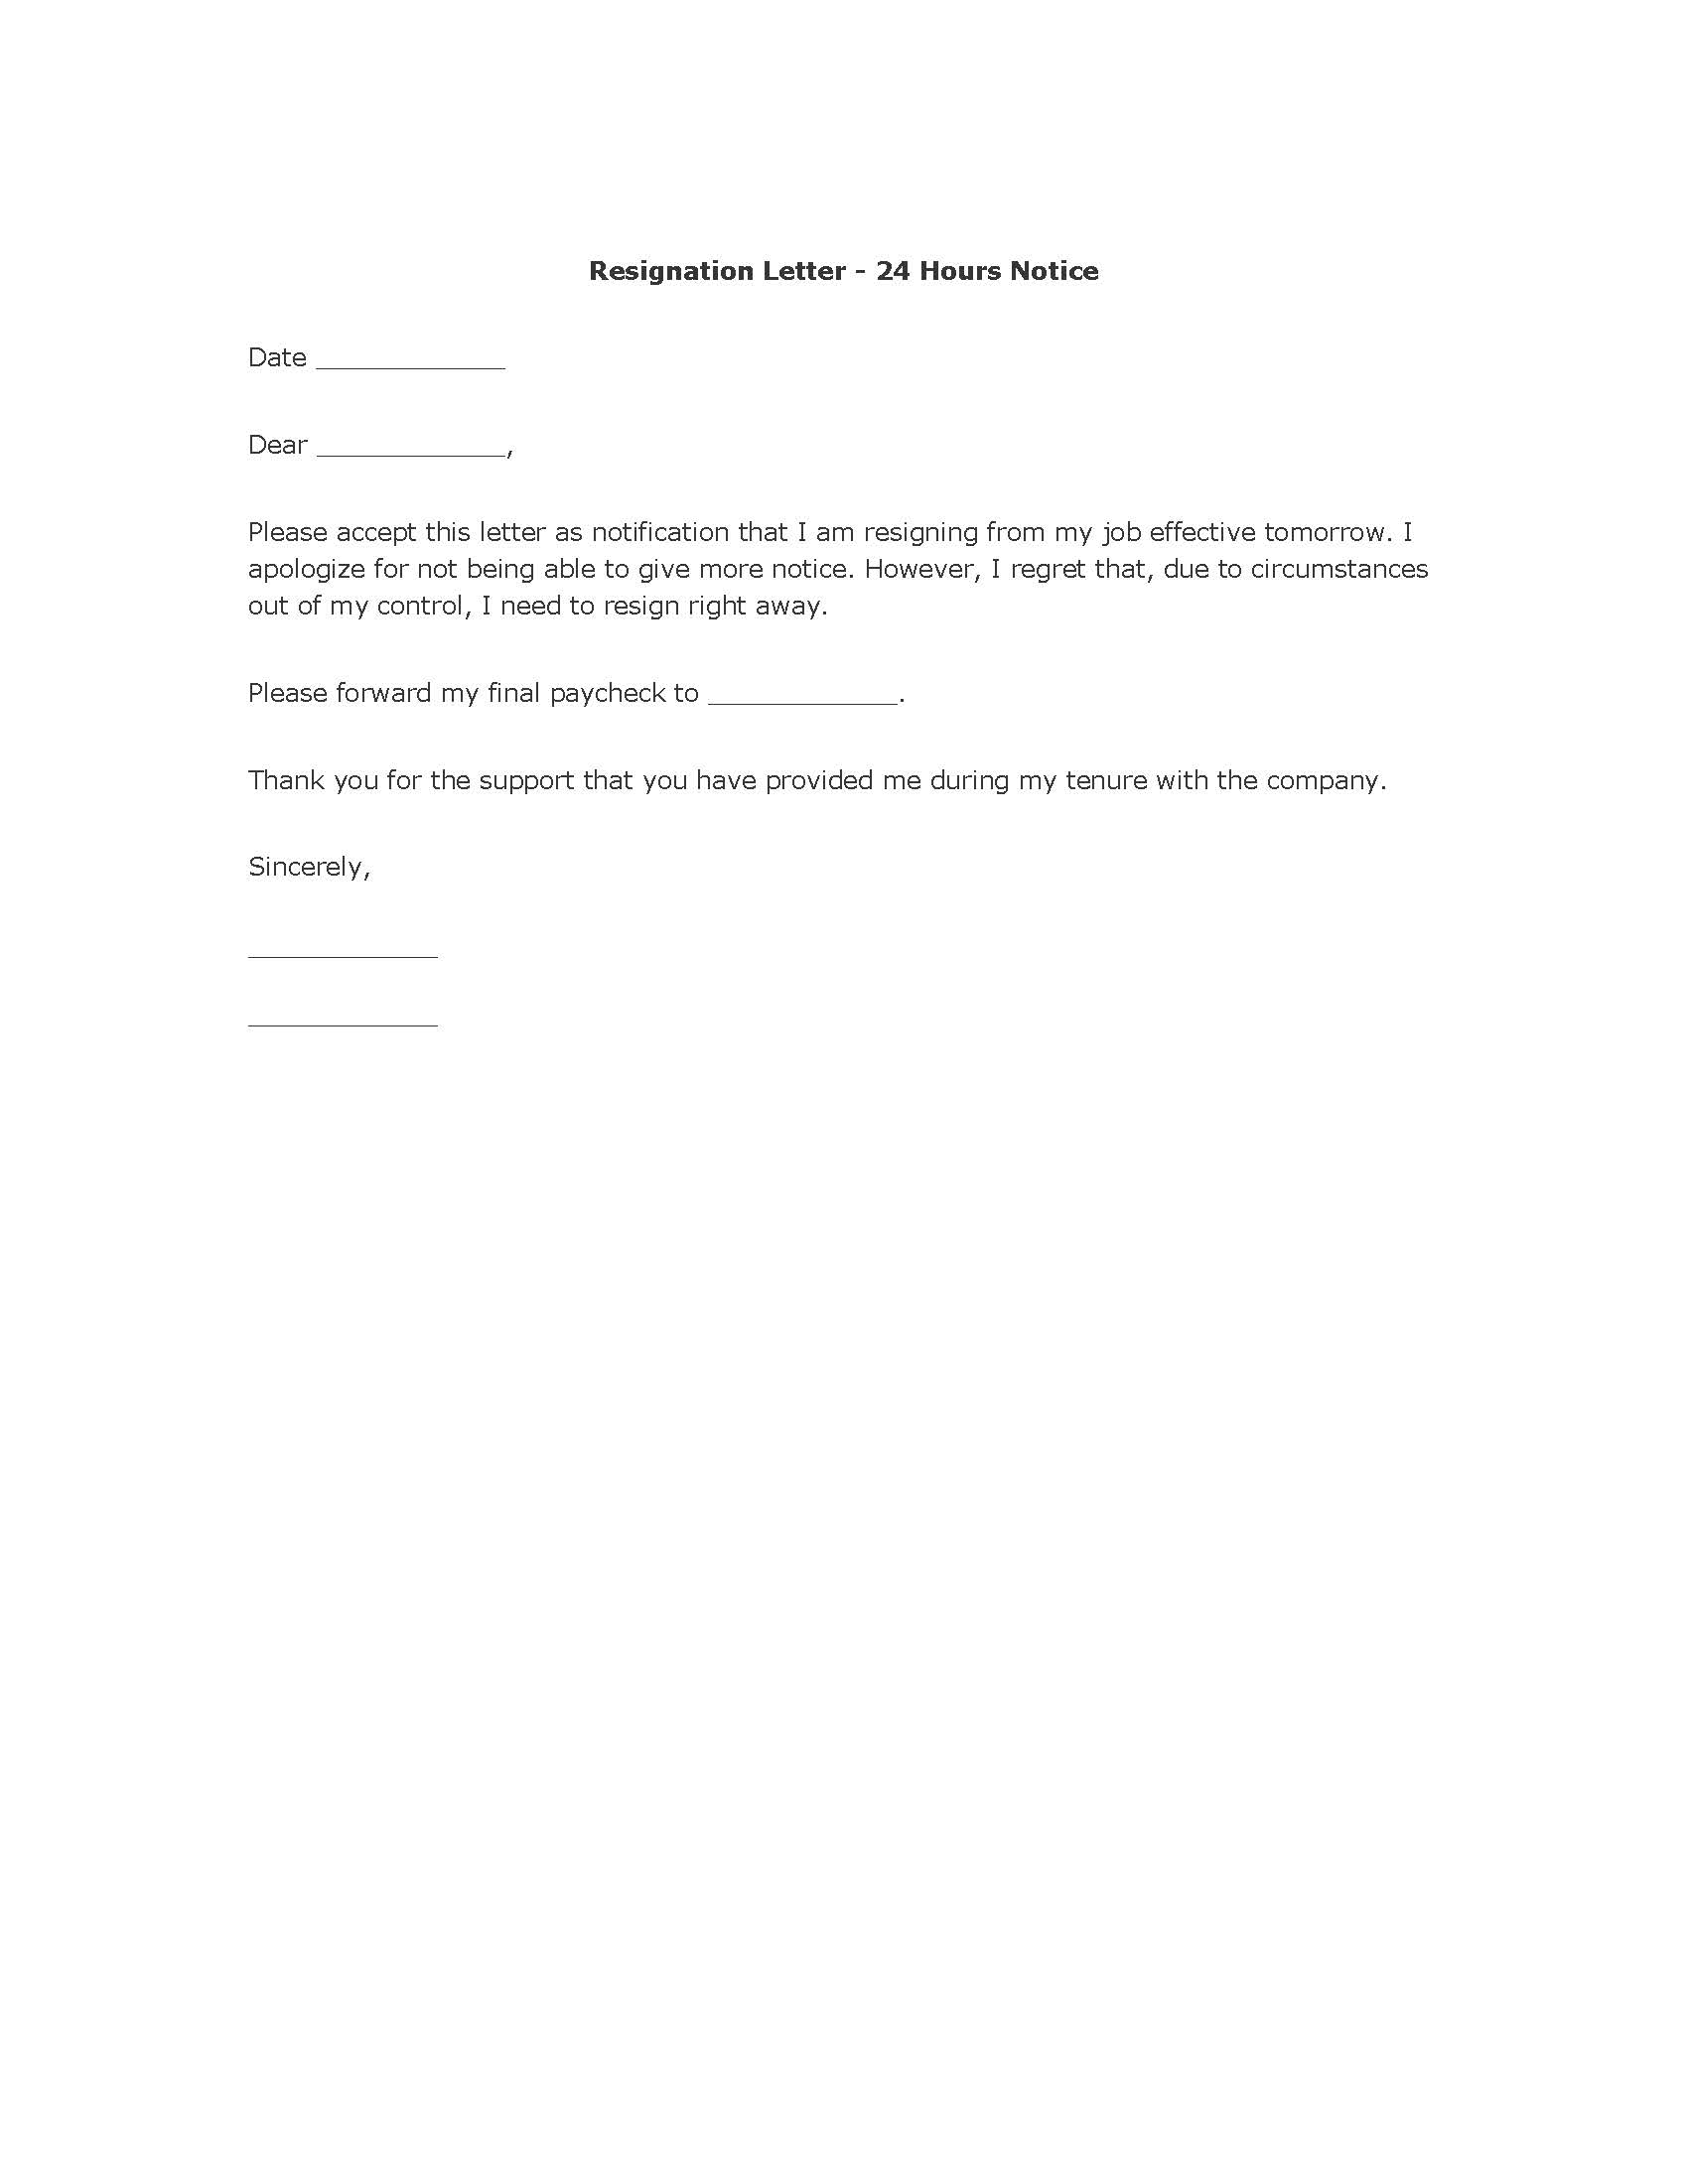 General Resume Personal Reasons Resignation Letter Cover – Professional Resignation Letter Template